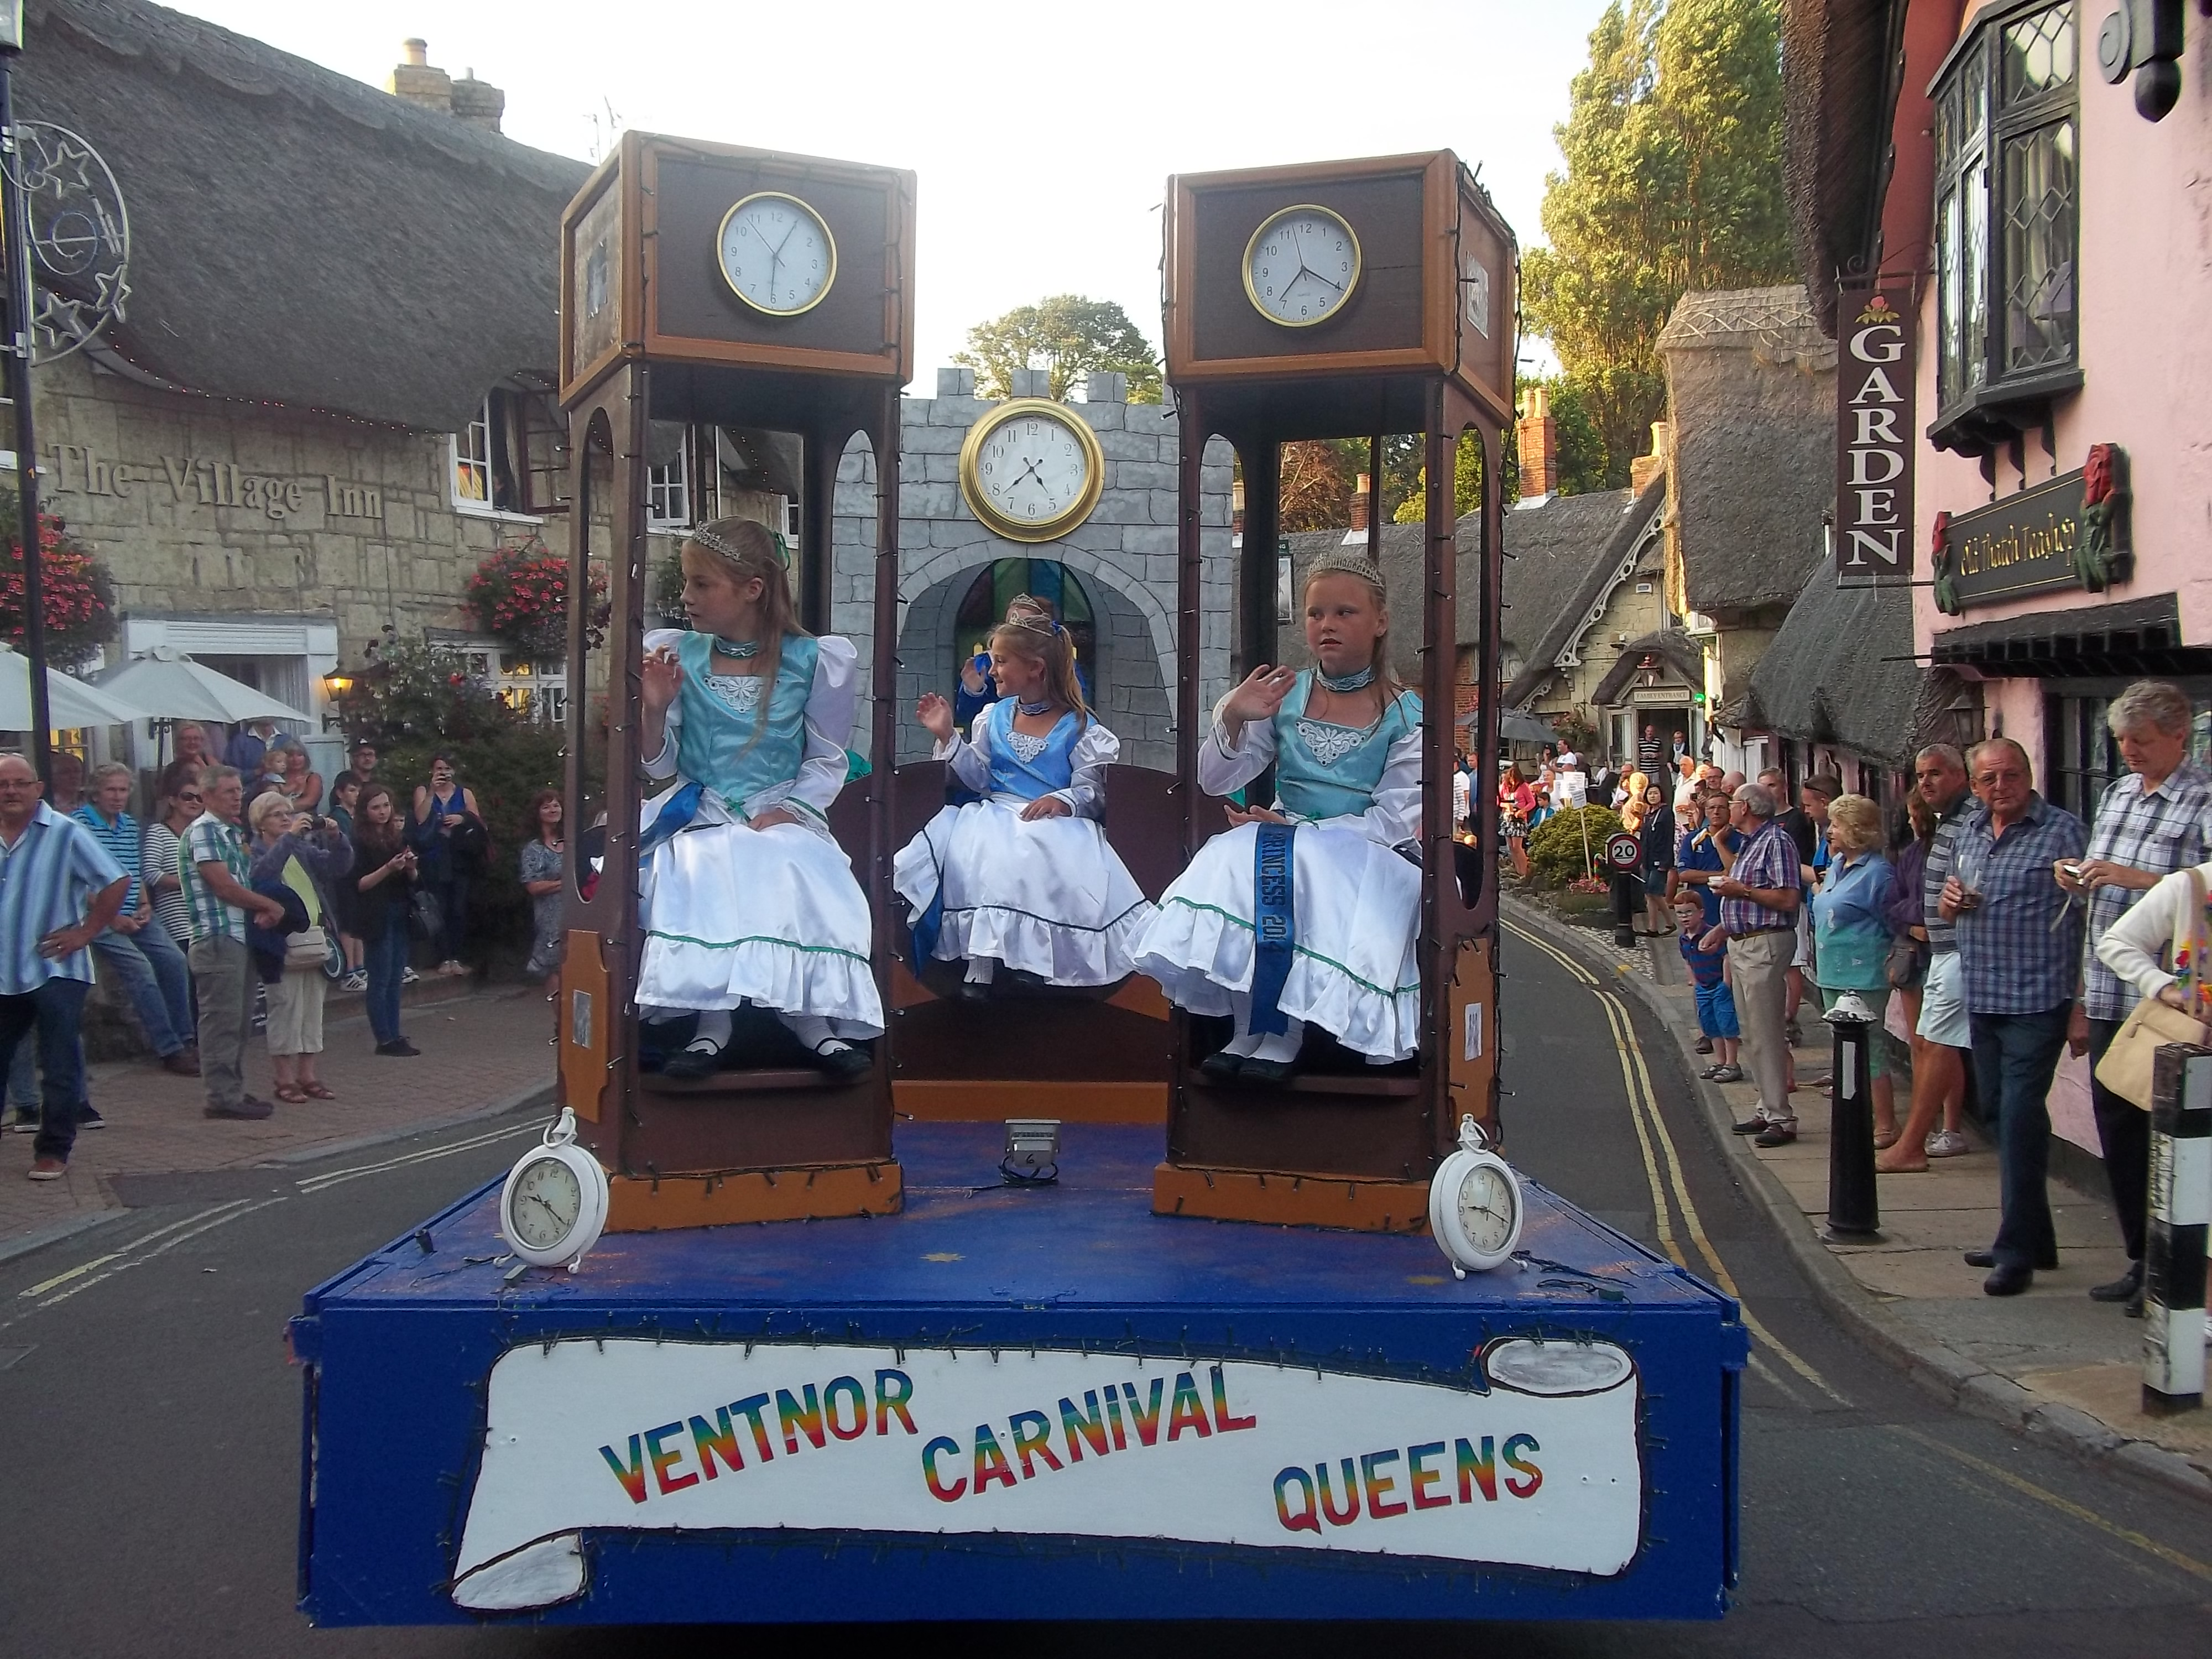 Shanklin Carnival- Ventnor Float